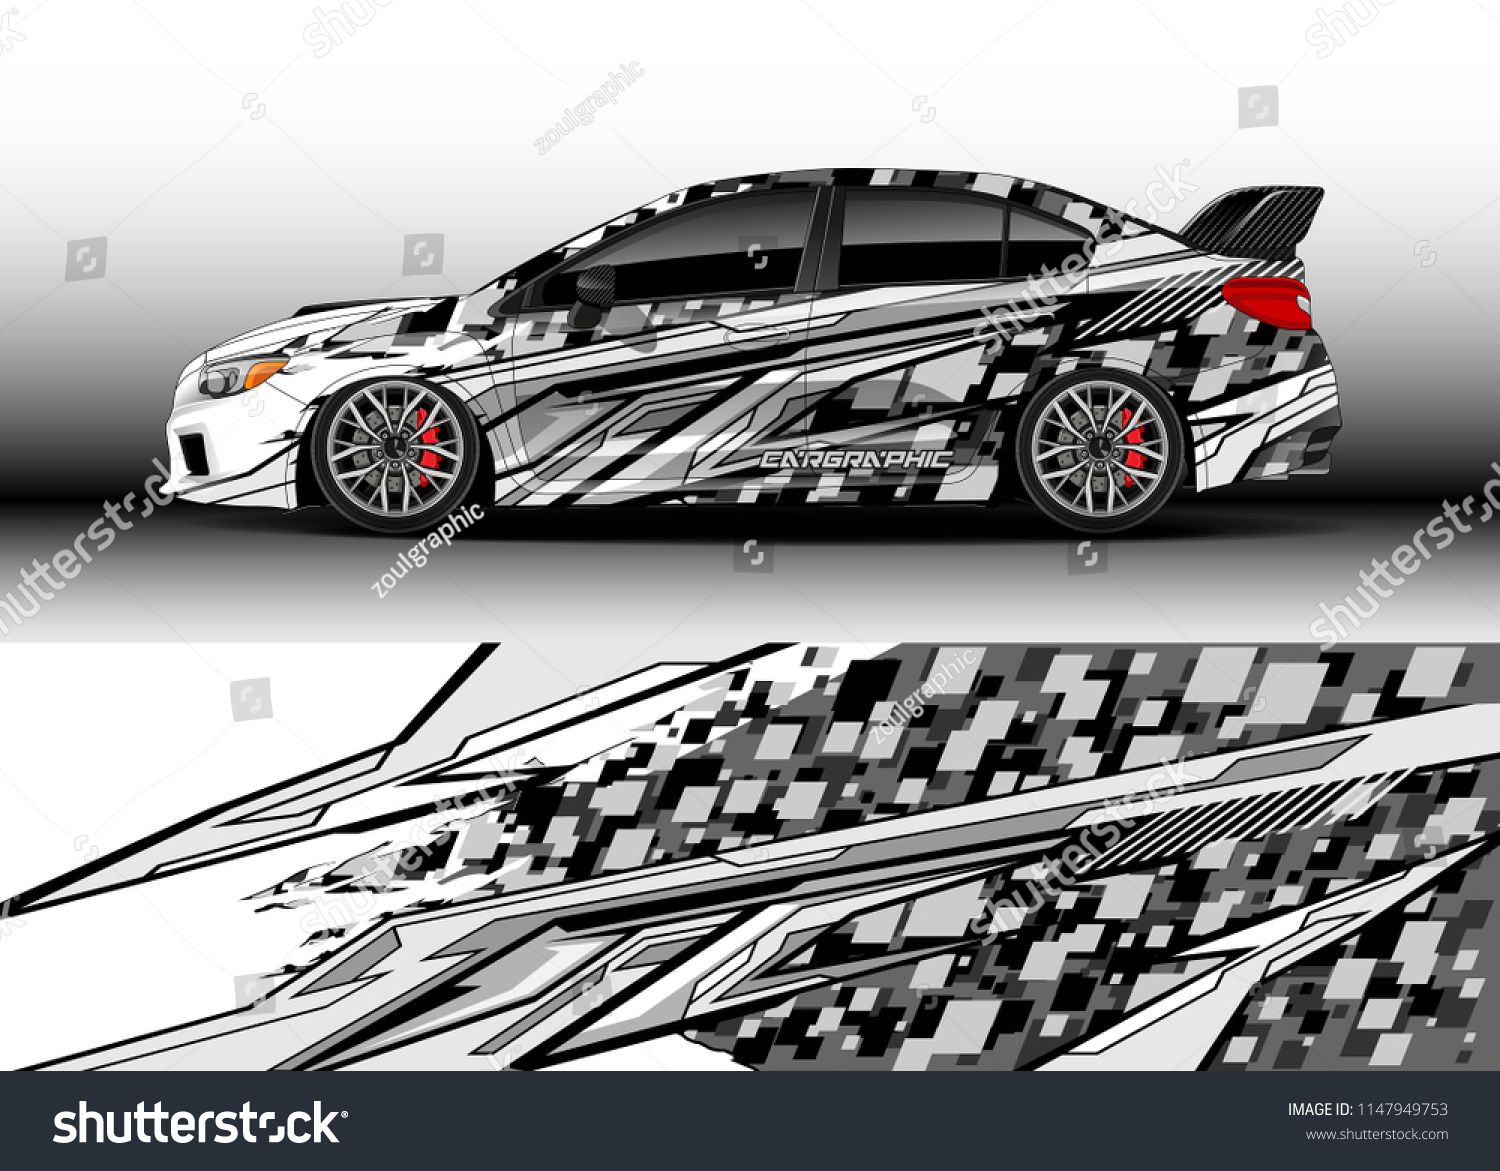 Car Wrap Design Vector Truck And Cargo Van Decal Graphic Abstract